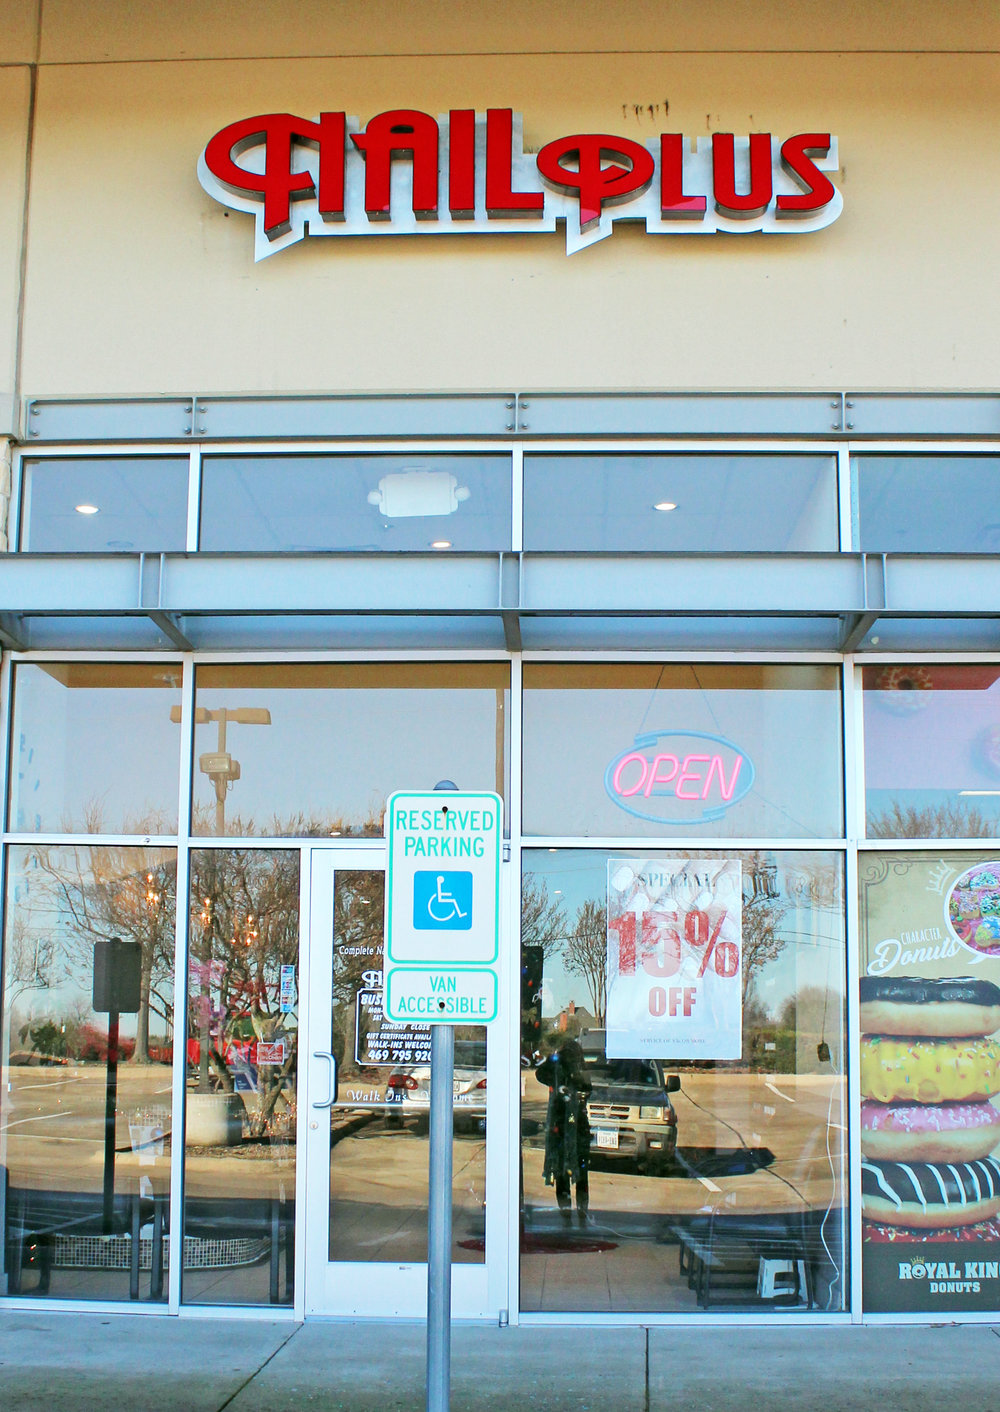 Nail Plus is located at 1546 E. Stacy Rd., Ste. 190, Allen 75002.